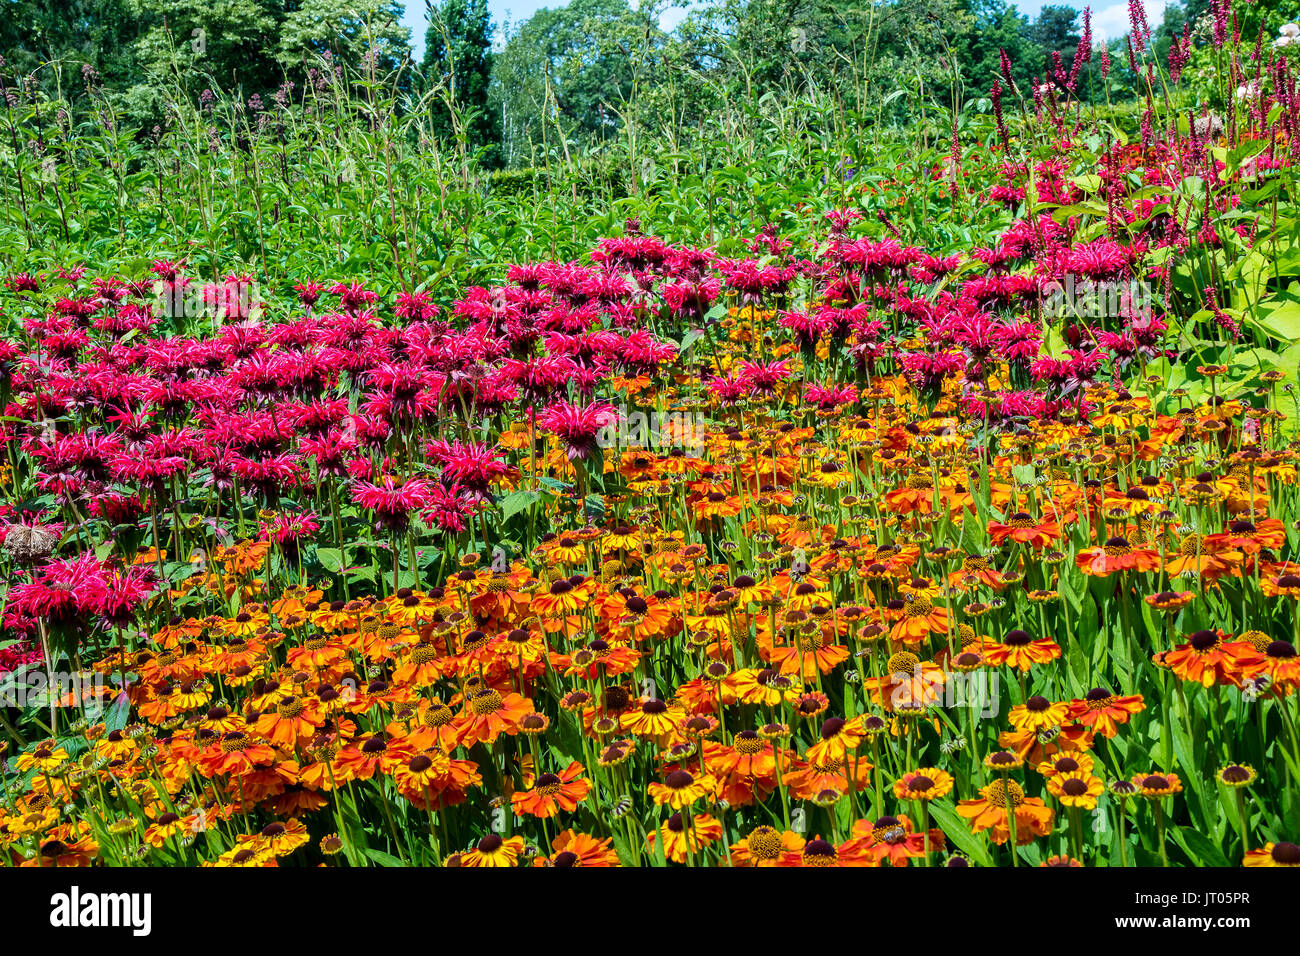 Perennial flowers Pink Monarda and Orange Rudbeckia in a herbaceous border. - Stock Image